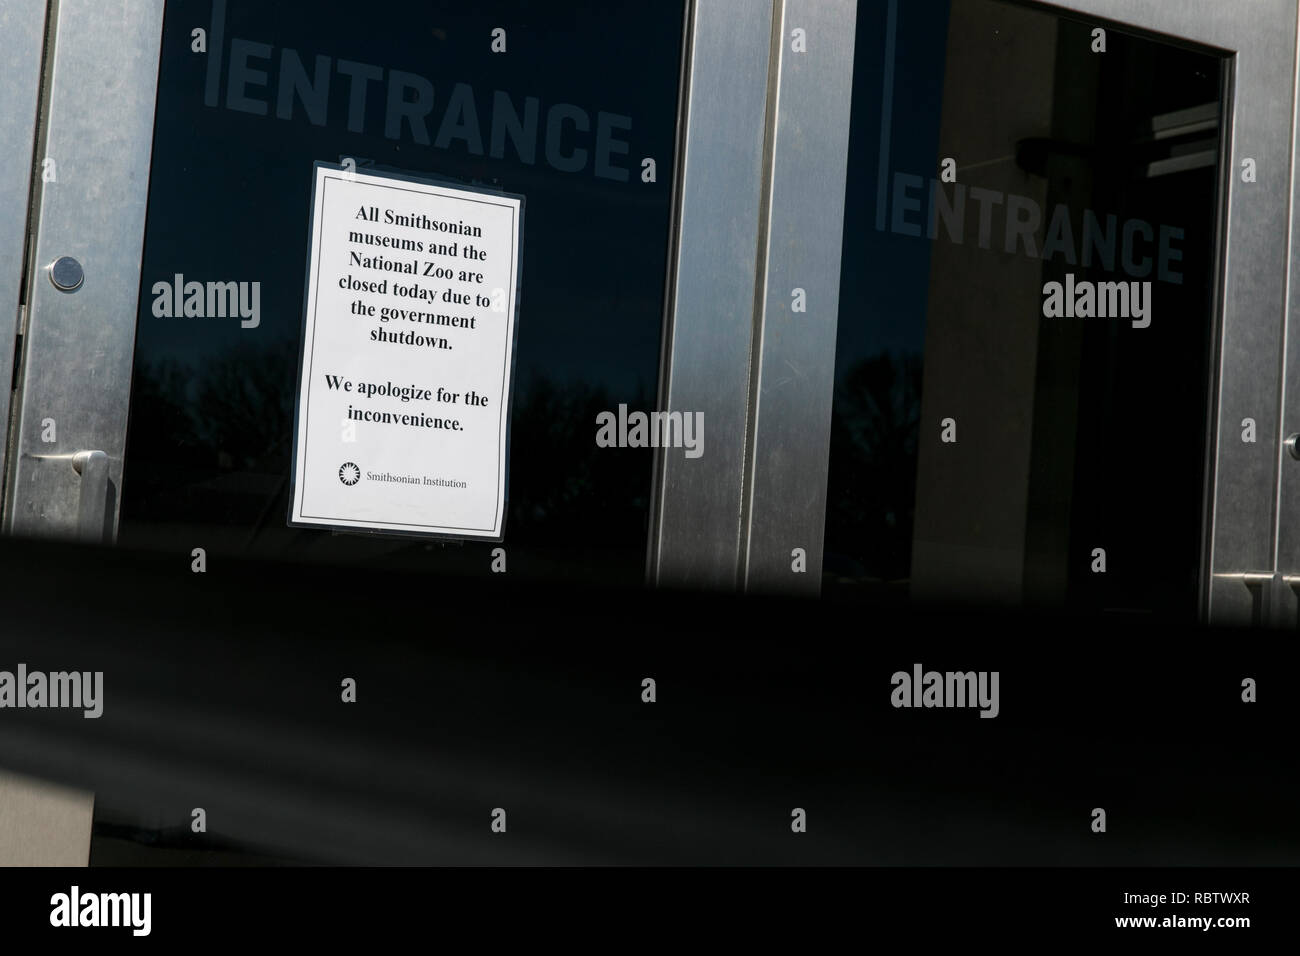 Washington, DC, USA. 11th Jan, 2019. A sign outside of the Smithsonian National Museum of American History informing visitors that the museum is closed due to the partial Government shutdown in Washington, DC on January 11, 2019. The shutdown, now entering it's 22nd day, is the longest Government shutdown in U.S. history. Credit: Kristoffer Tripplaar/Alamy Live News - Stock Image